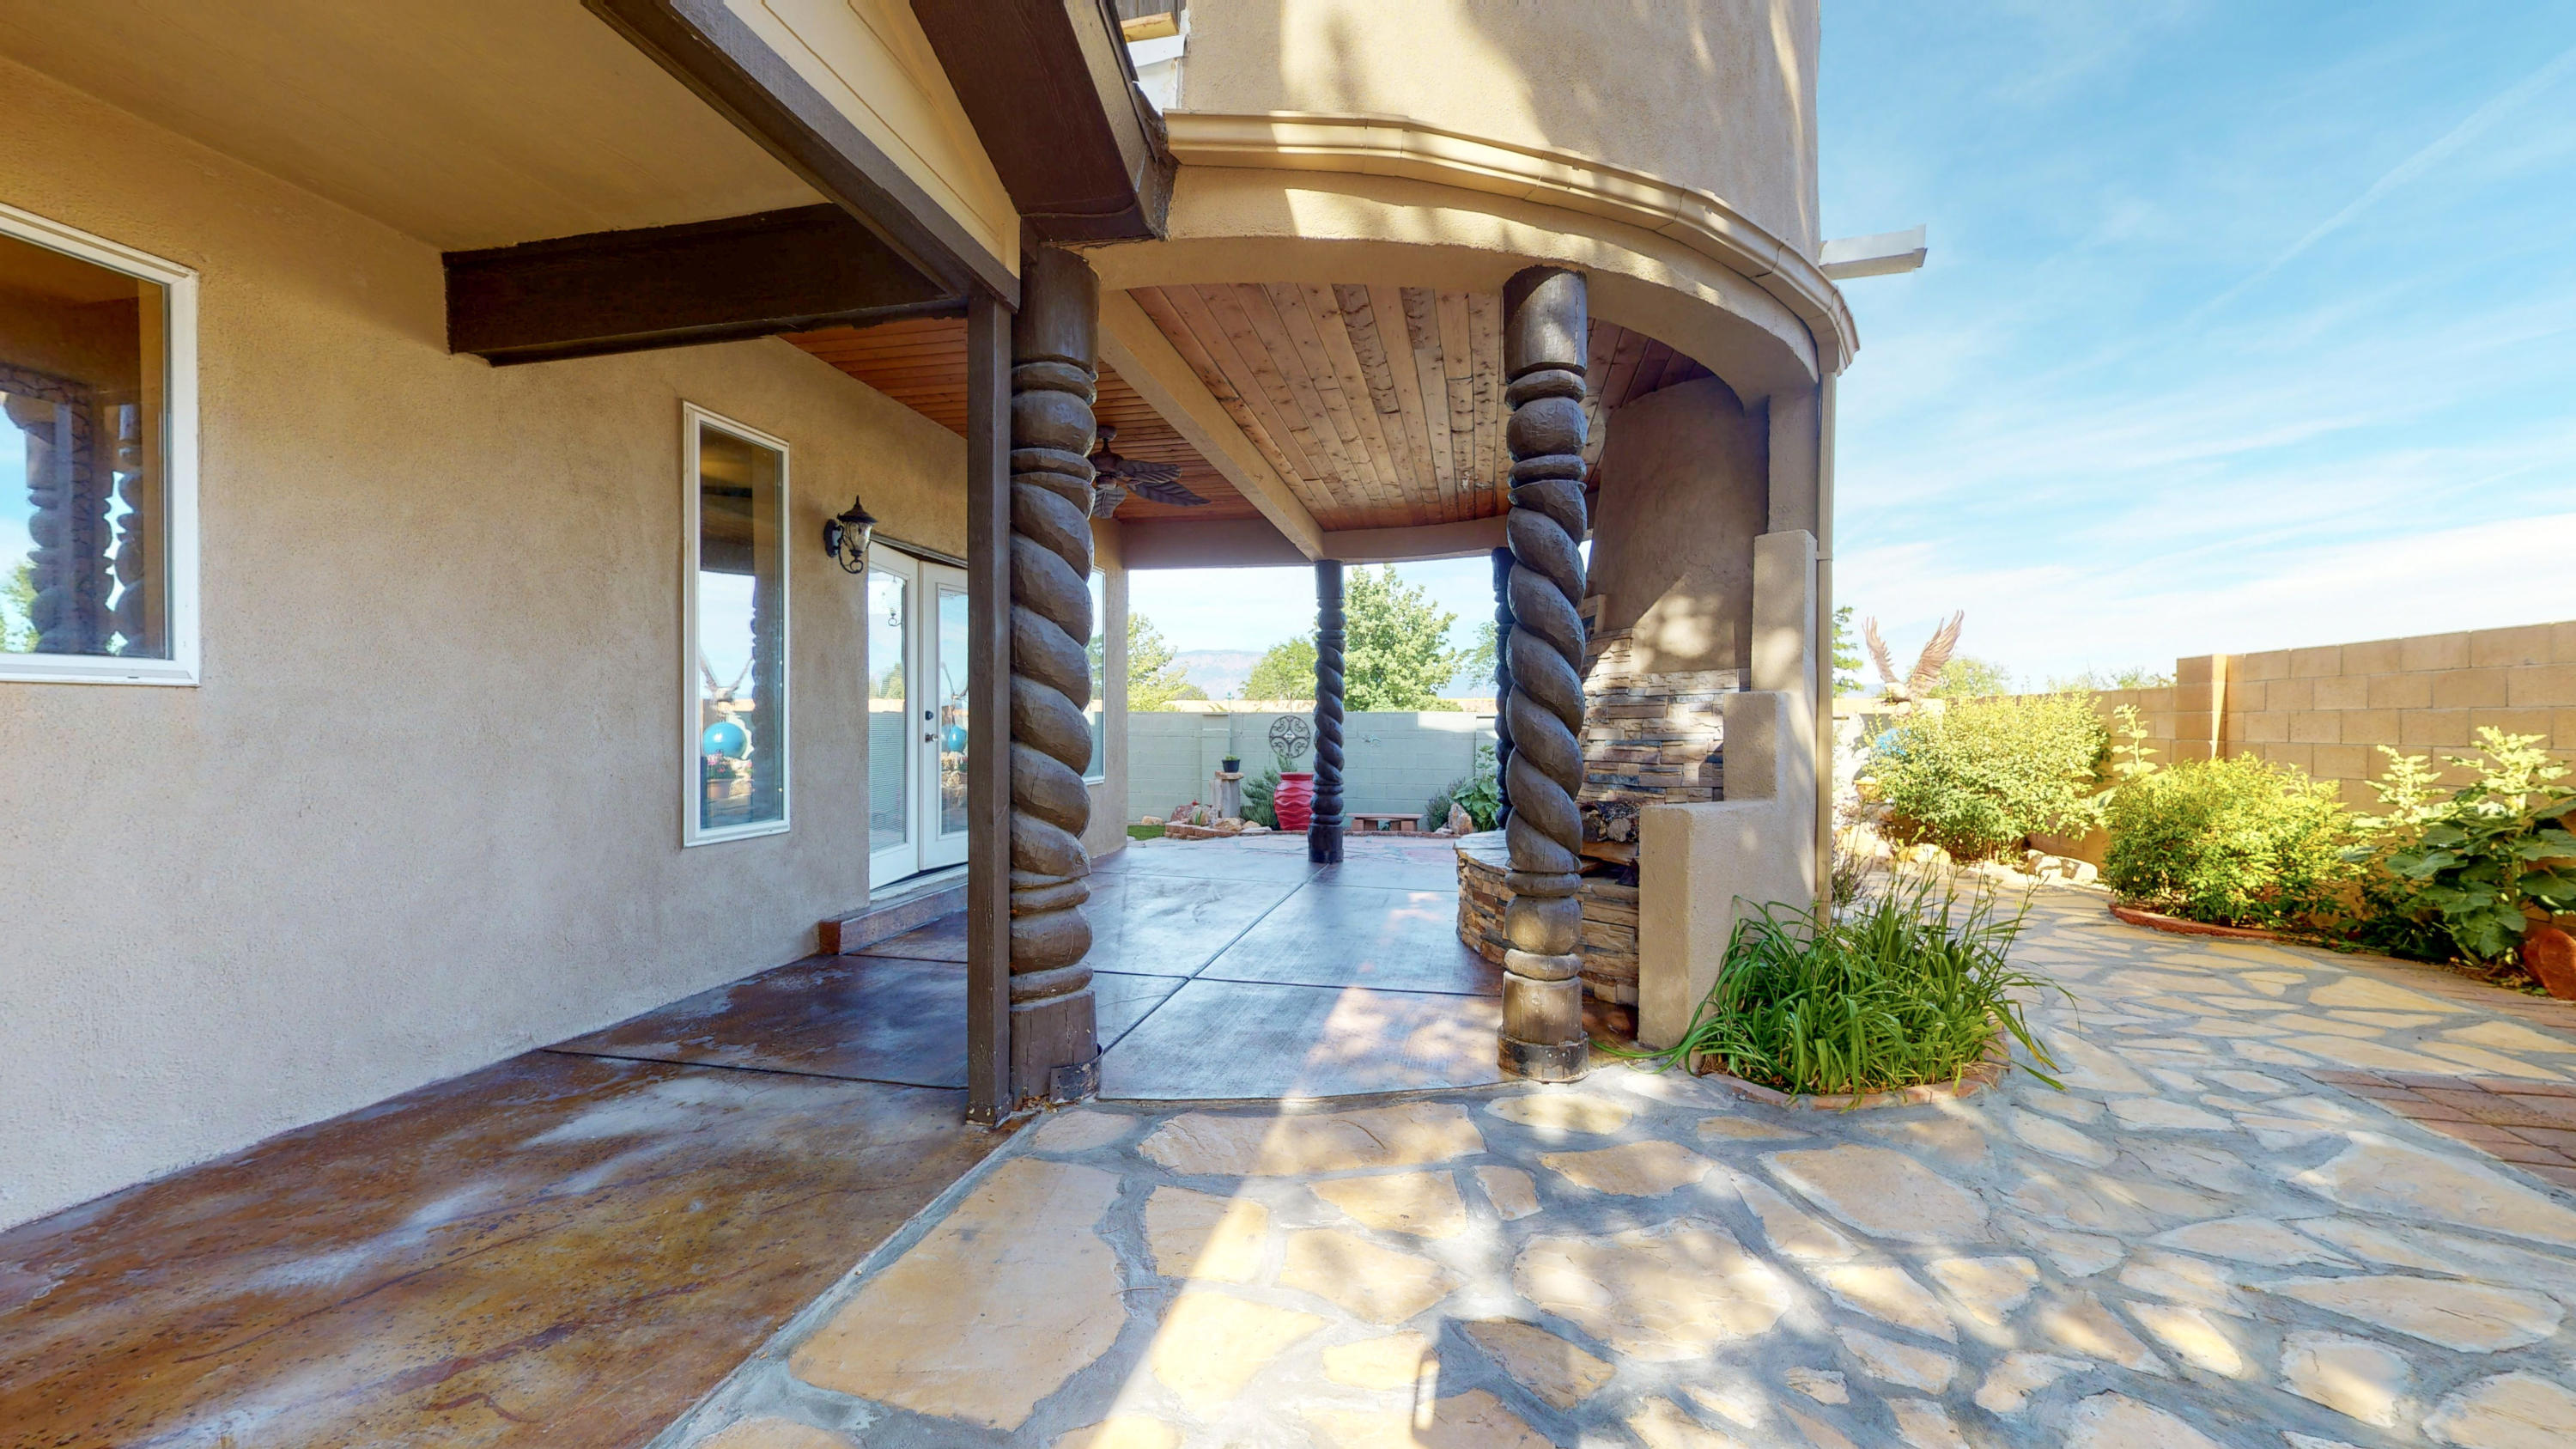 Wonderful semi-custom home! Awesome mountain & city views! New roof done in 4/2020 except upstairs family room. Refreshing Refrigerated air! Water heater is about 6 months new! Equipped & private office! Solid wood doors!  Travertine tile! All rooms are on main floor except the family/recreation room! Entertaining delight in front courtyard, living room with access to retreat like backyard with tailor-made covered patio with outdoor kiva fireplace, Upstairs recreation room with balcony! Spacious bright kitchen! Owner's suite with separate tub/shower & double sinks.  Backyard vehicle access! You'll love this​​‌​​​​‌​​‌‌​‌‌‌​​‌‌​‌‌‌​​‌‌​‌‌‌ one!